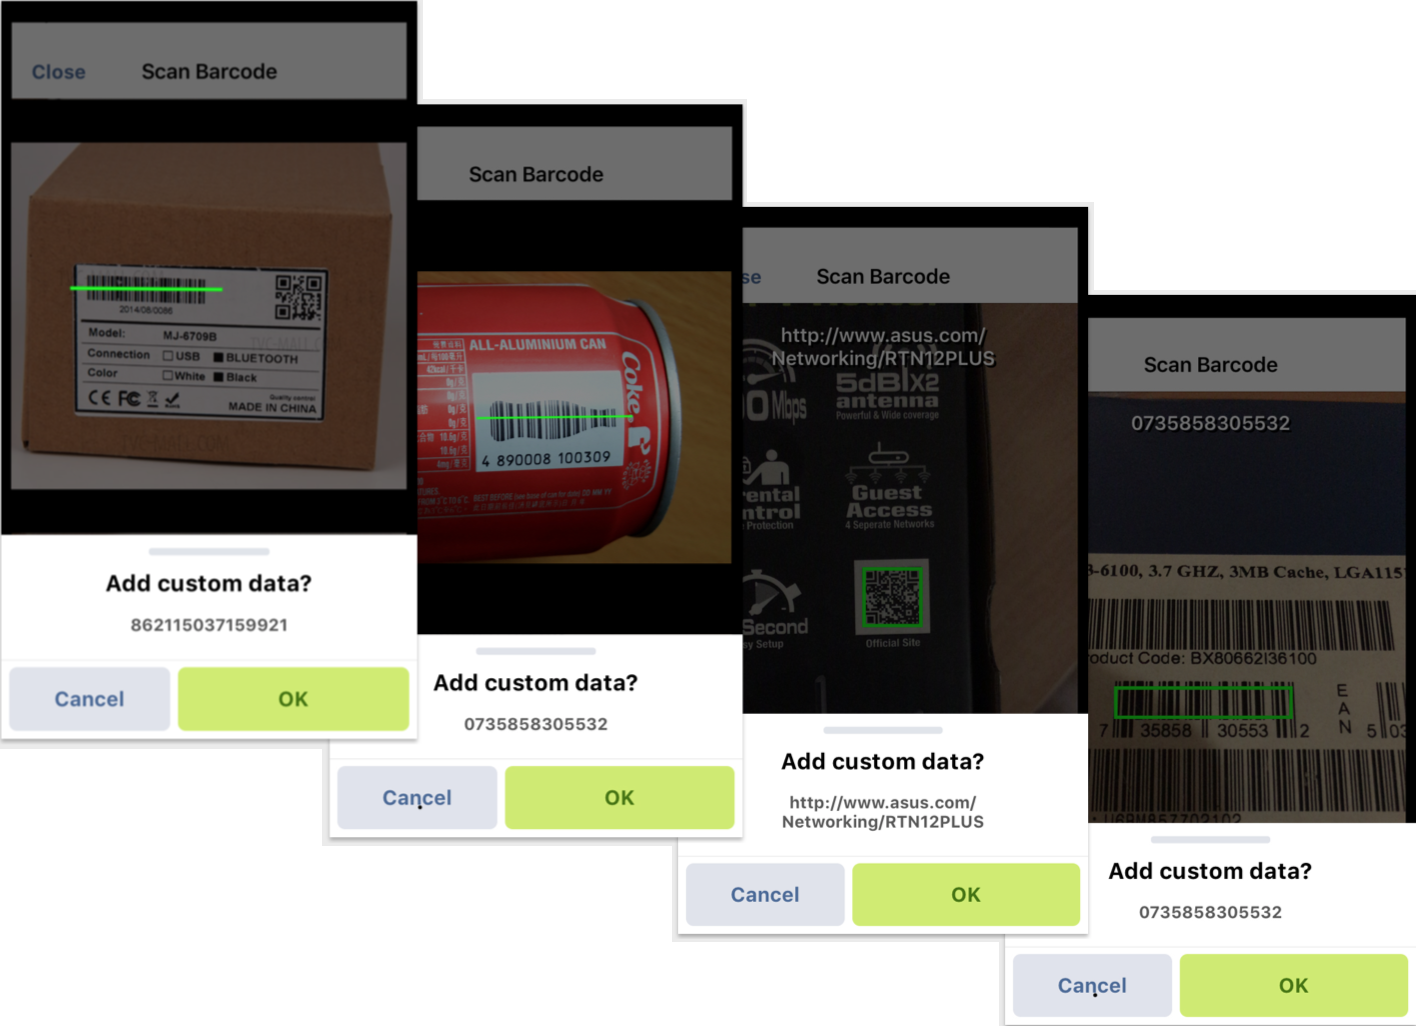 Barcode Types and Scanning Speed of the Route4Me iOS Mobile App